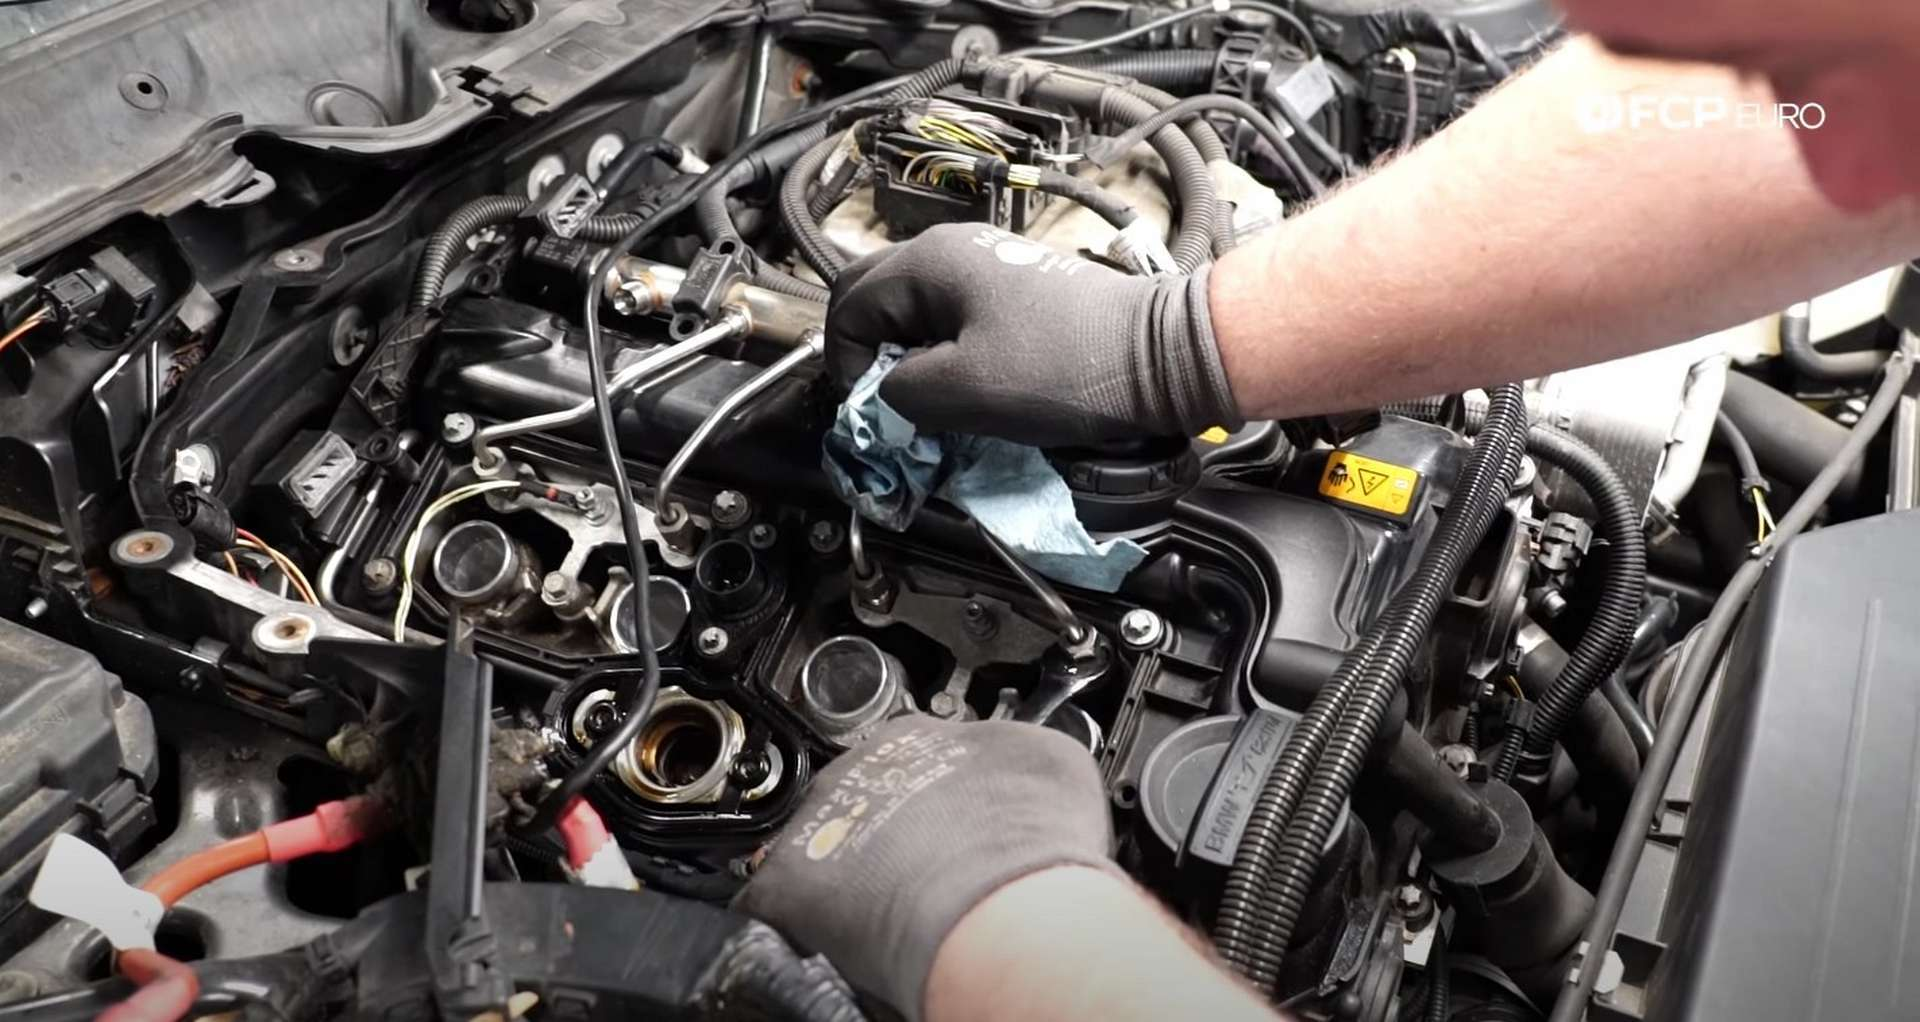 15-DIY-BMW-F30-Valve-Cover-Replacement_Removing-Fuel-System